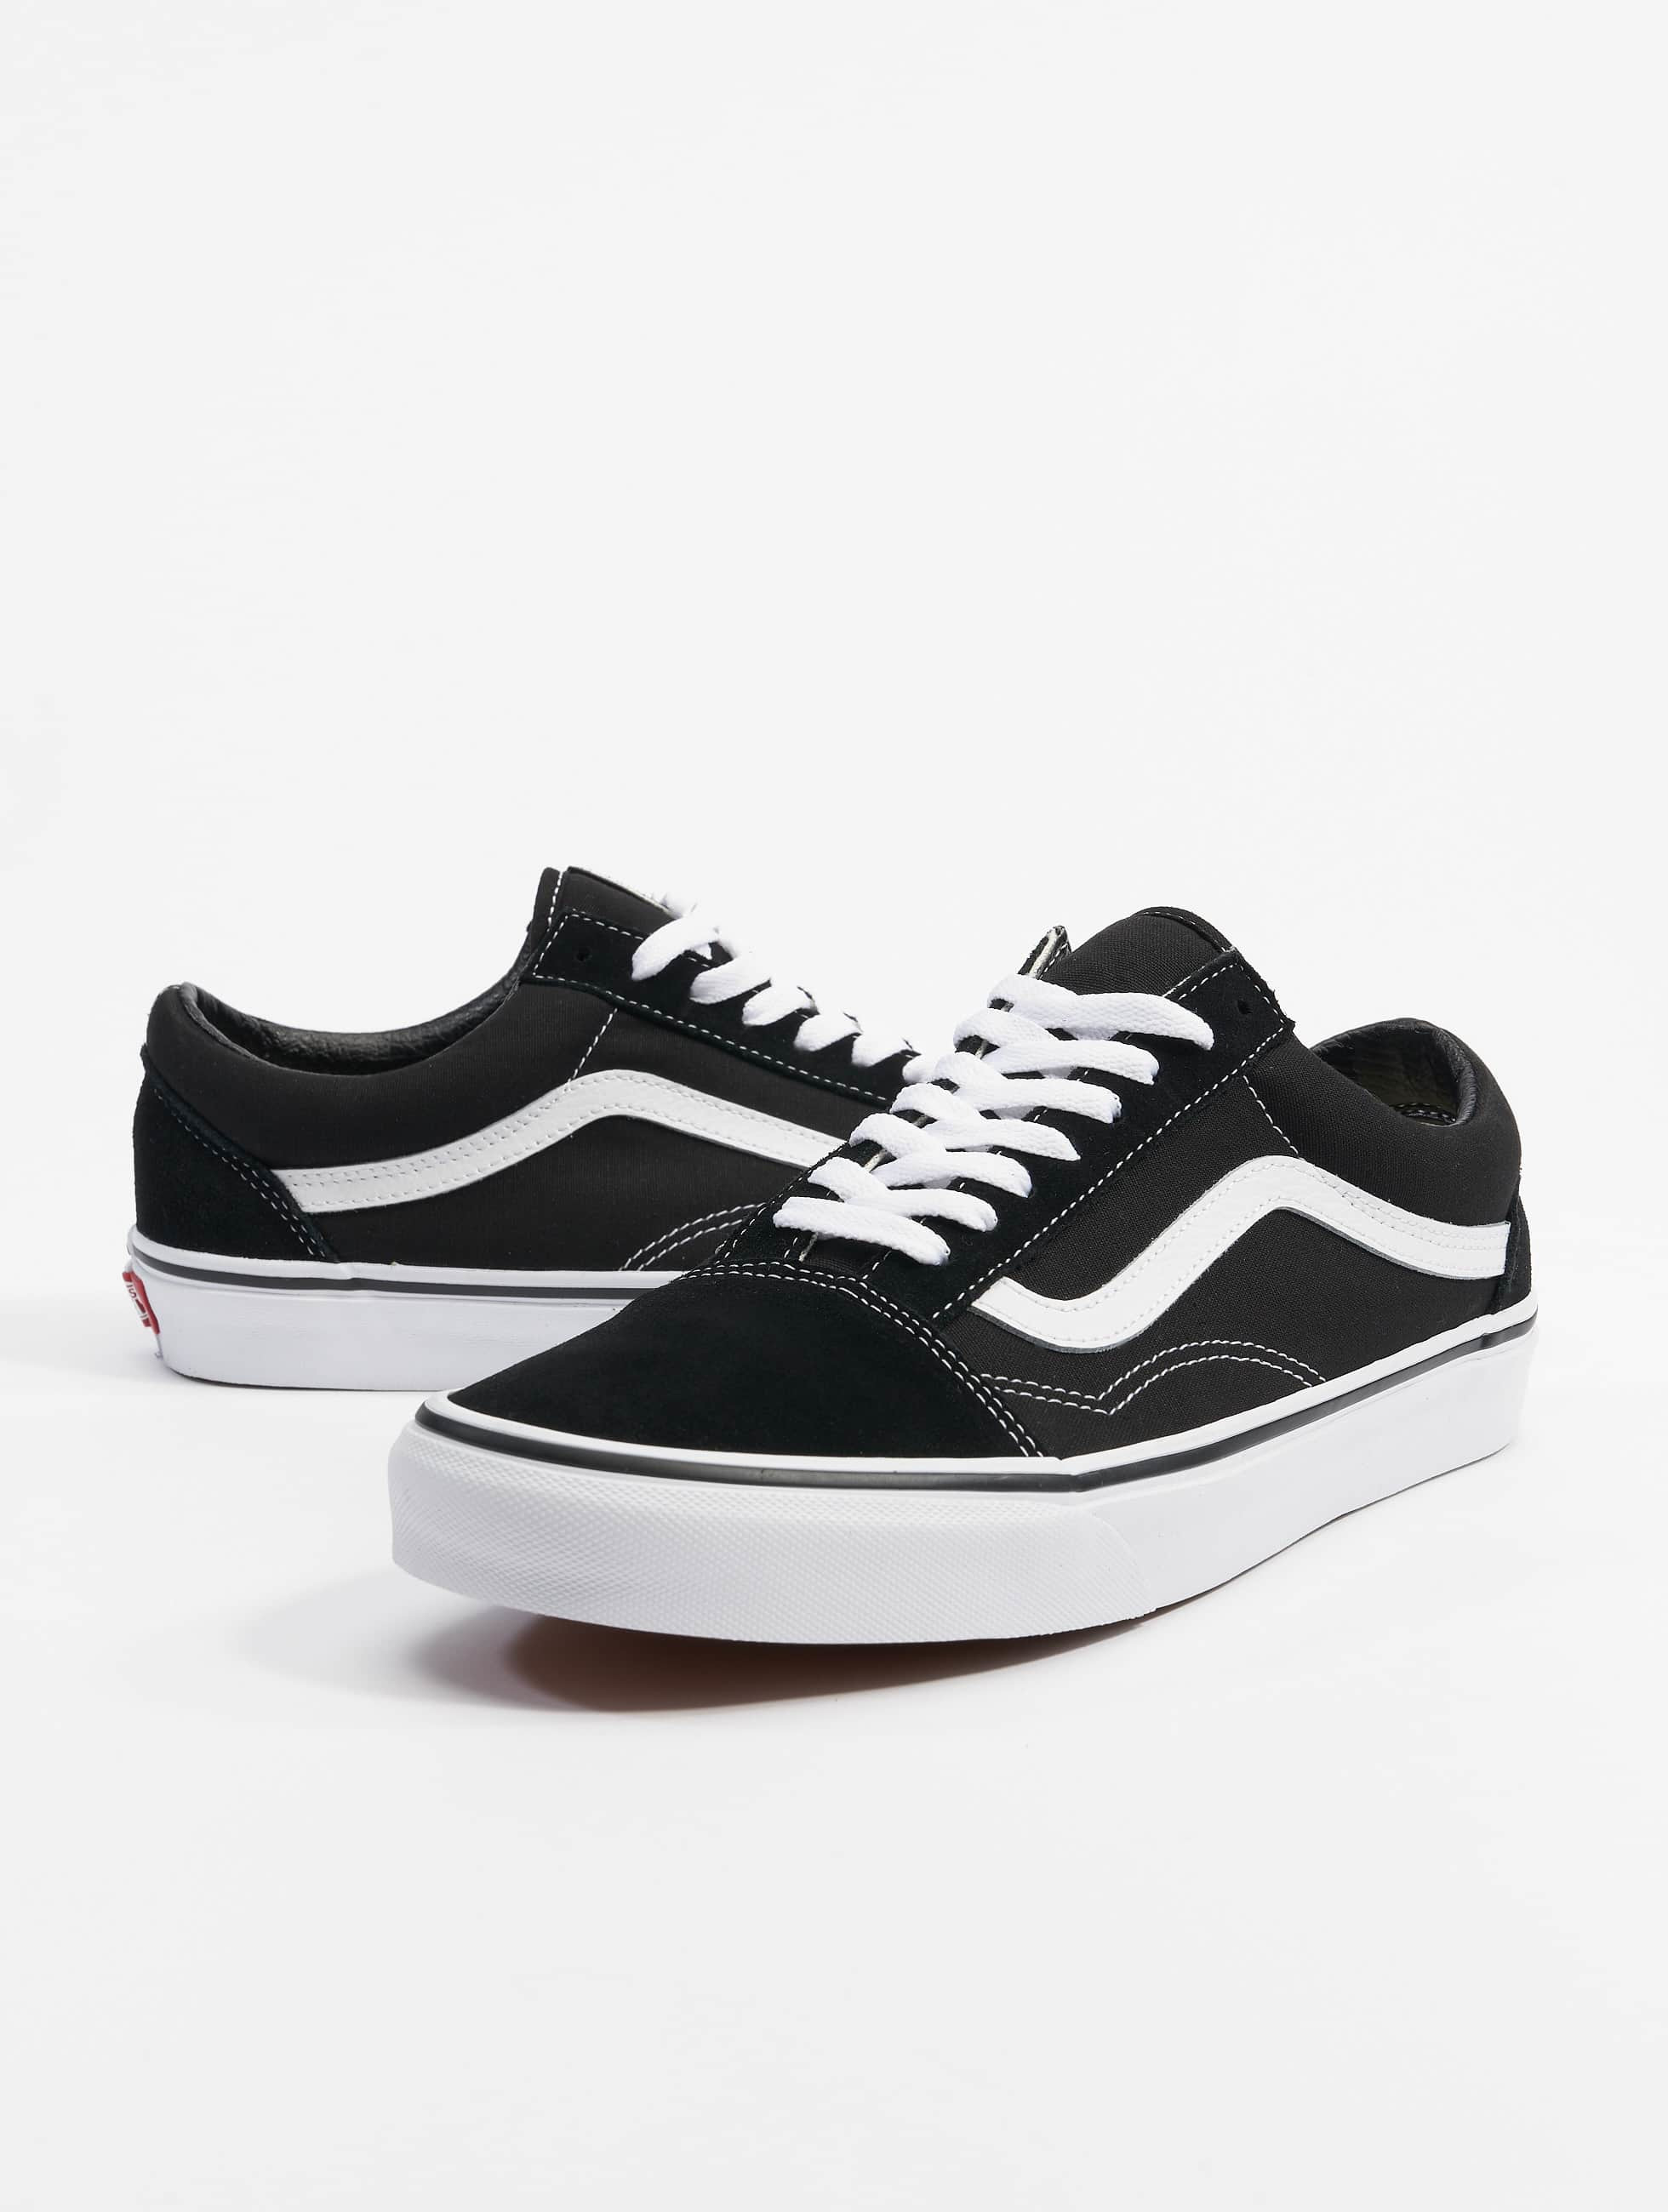 Vans Dc Shoes